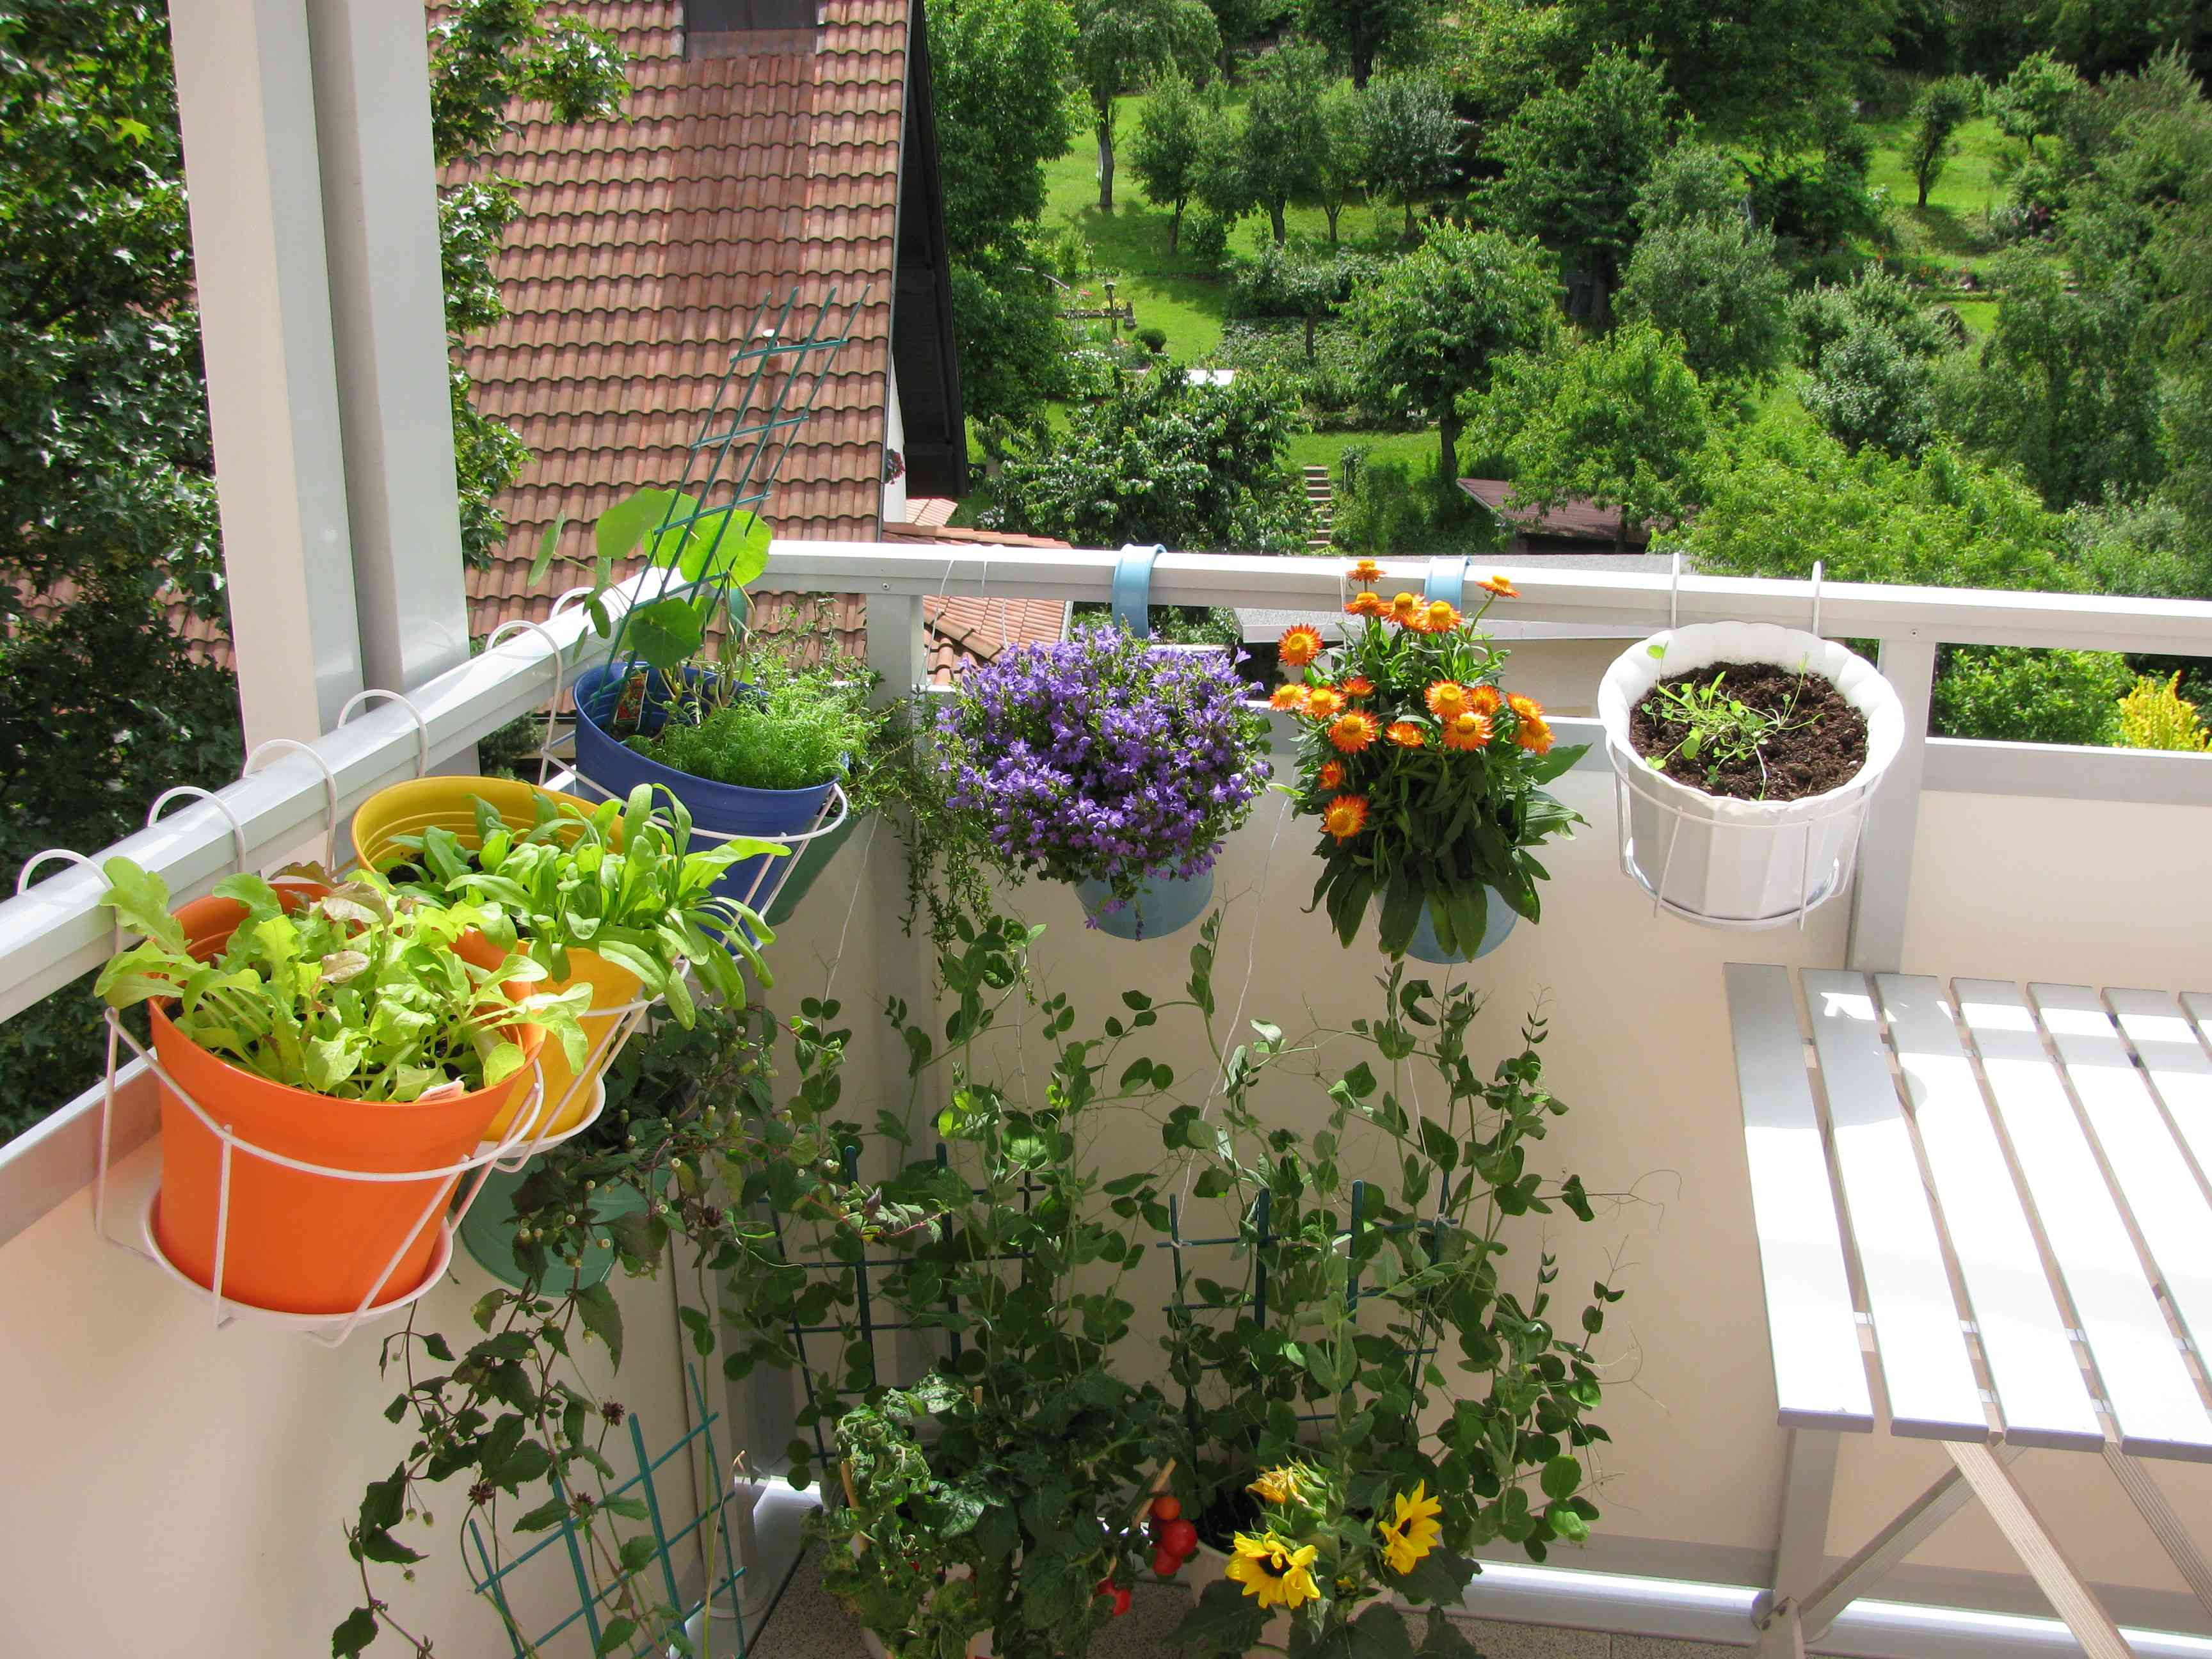 herbs in colorful planters mounted on balcony railing